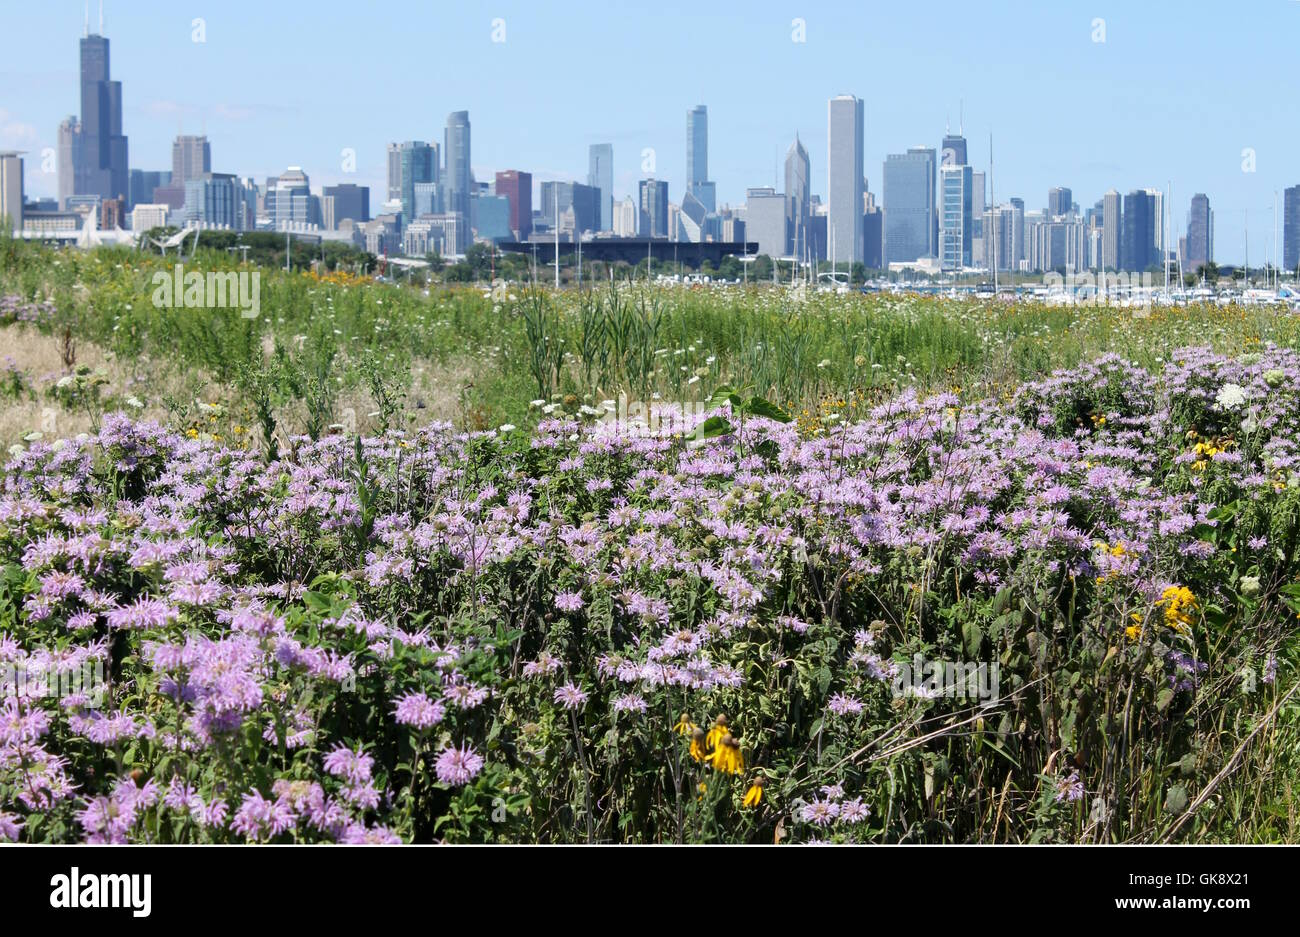 The Chicago skyline from a prairie preserve on the south side of Chicago - Stock Image